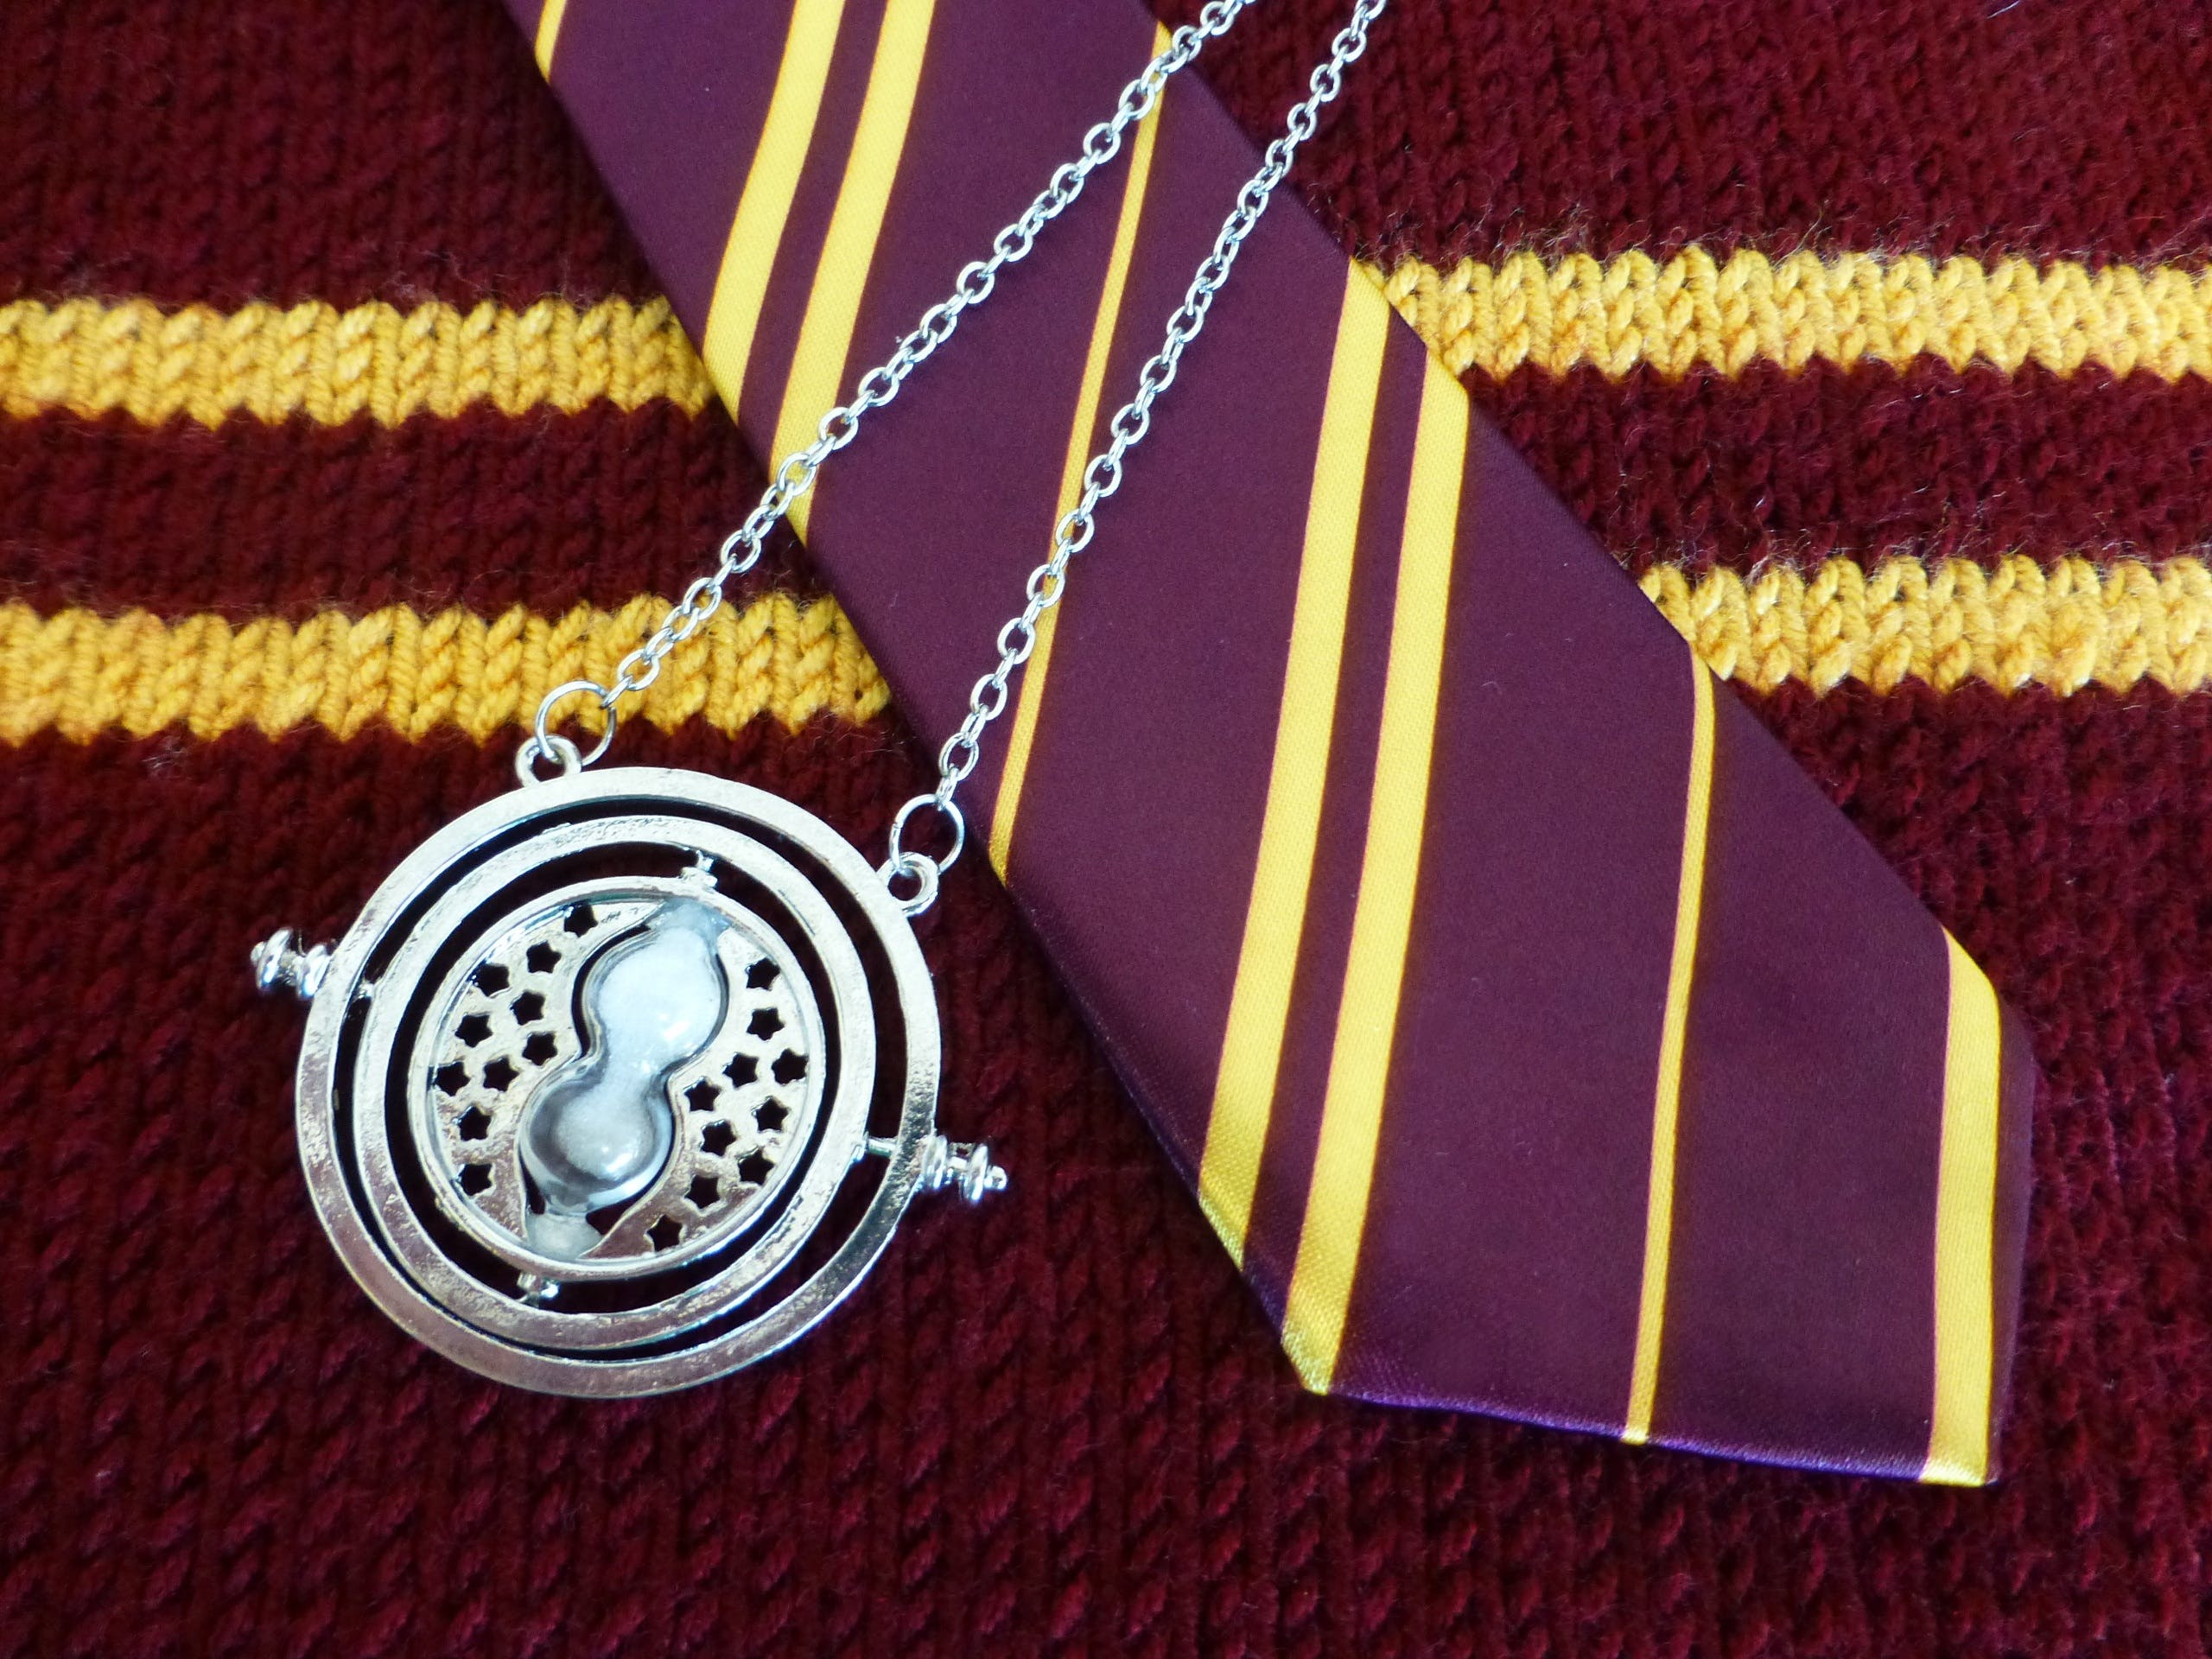 Silver-colored Necklace and Purple Necktie